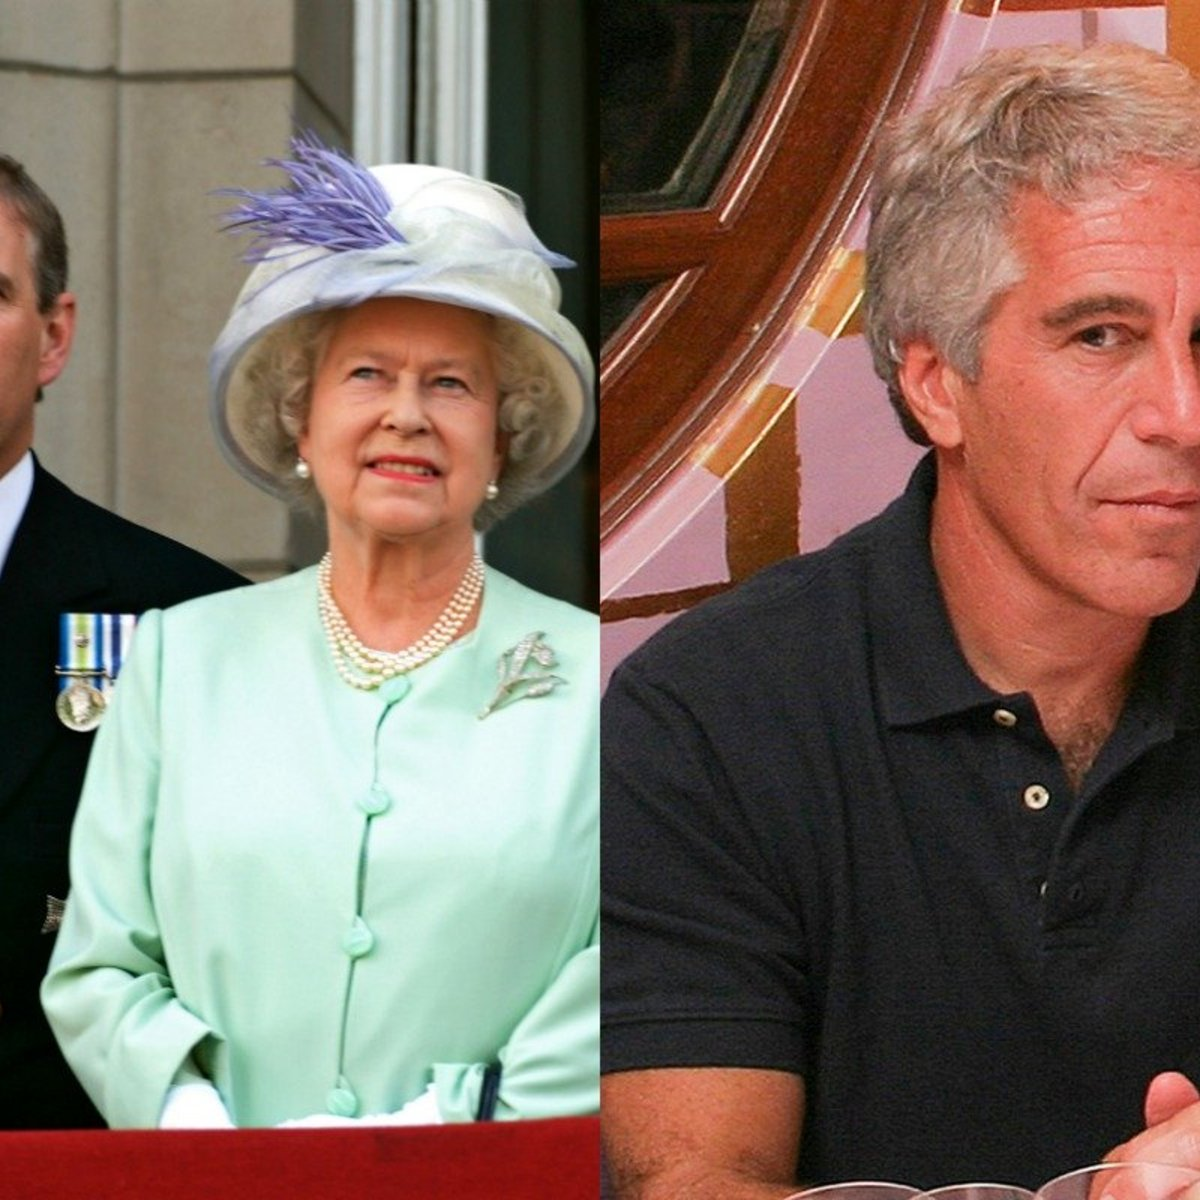 Prince Andrew Jeffrey Epstein How Royal Is Involved In The Scandal